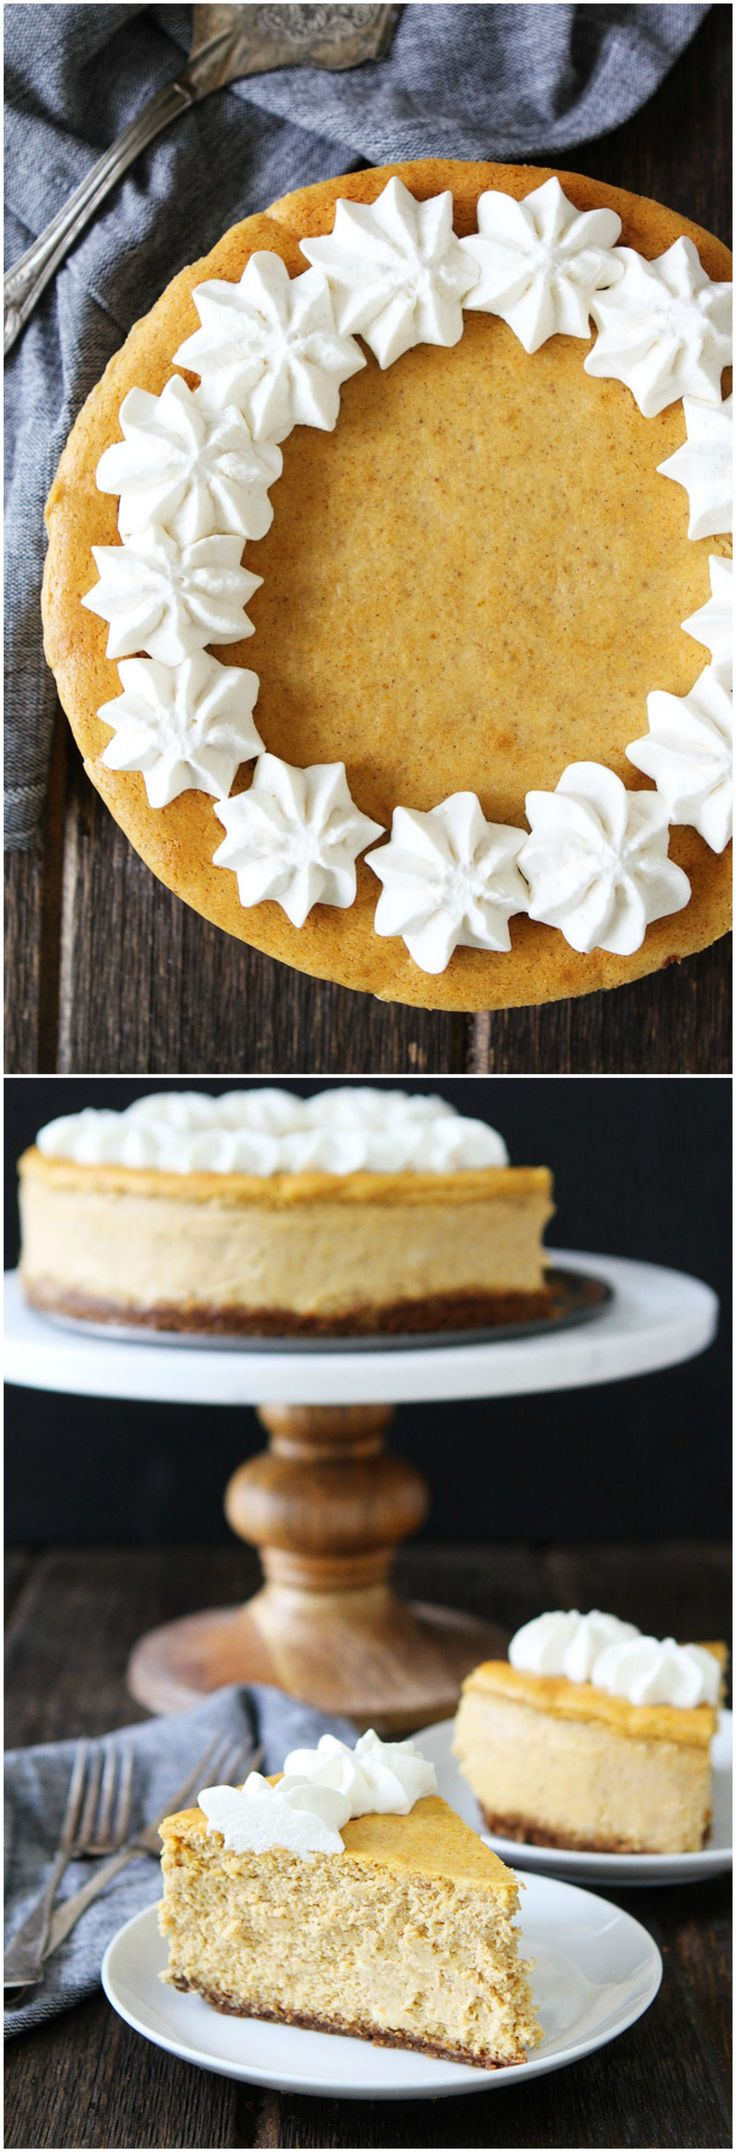 Pumpkin Cheesecake with Brown Butter Gingersnap Crust Recipe on twopeasandtheirpod.com This is the BEST cheesecake ever and it's easy to make too! It is the perfect dessert for Thanksgiving!